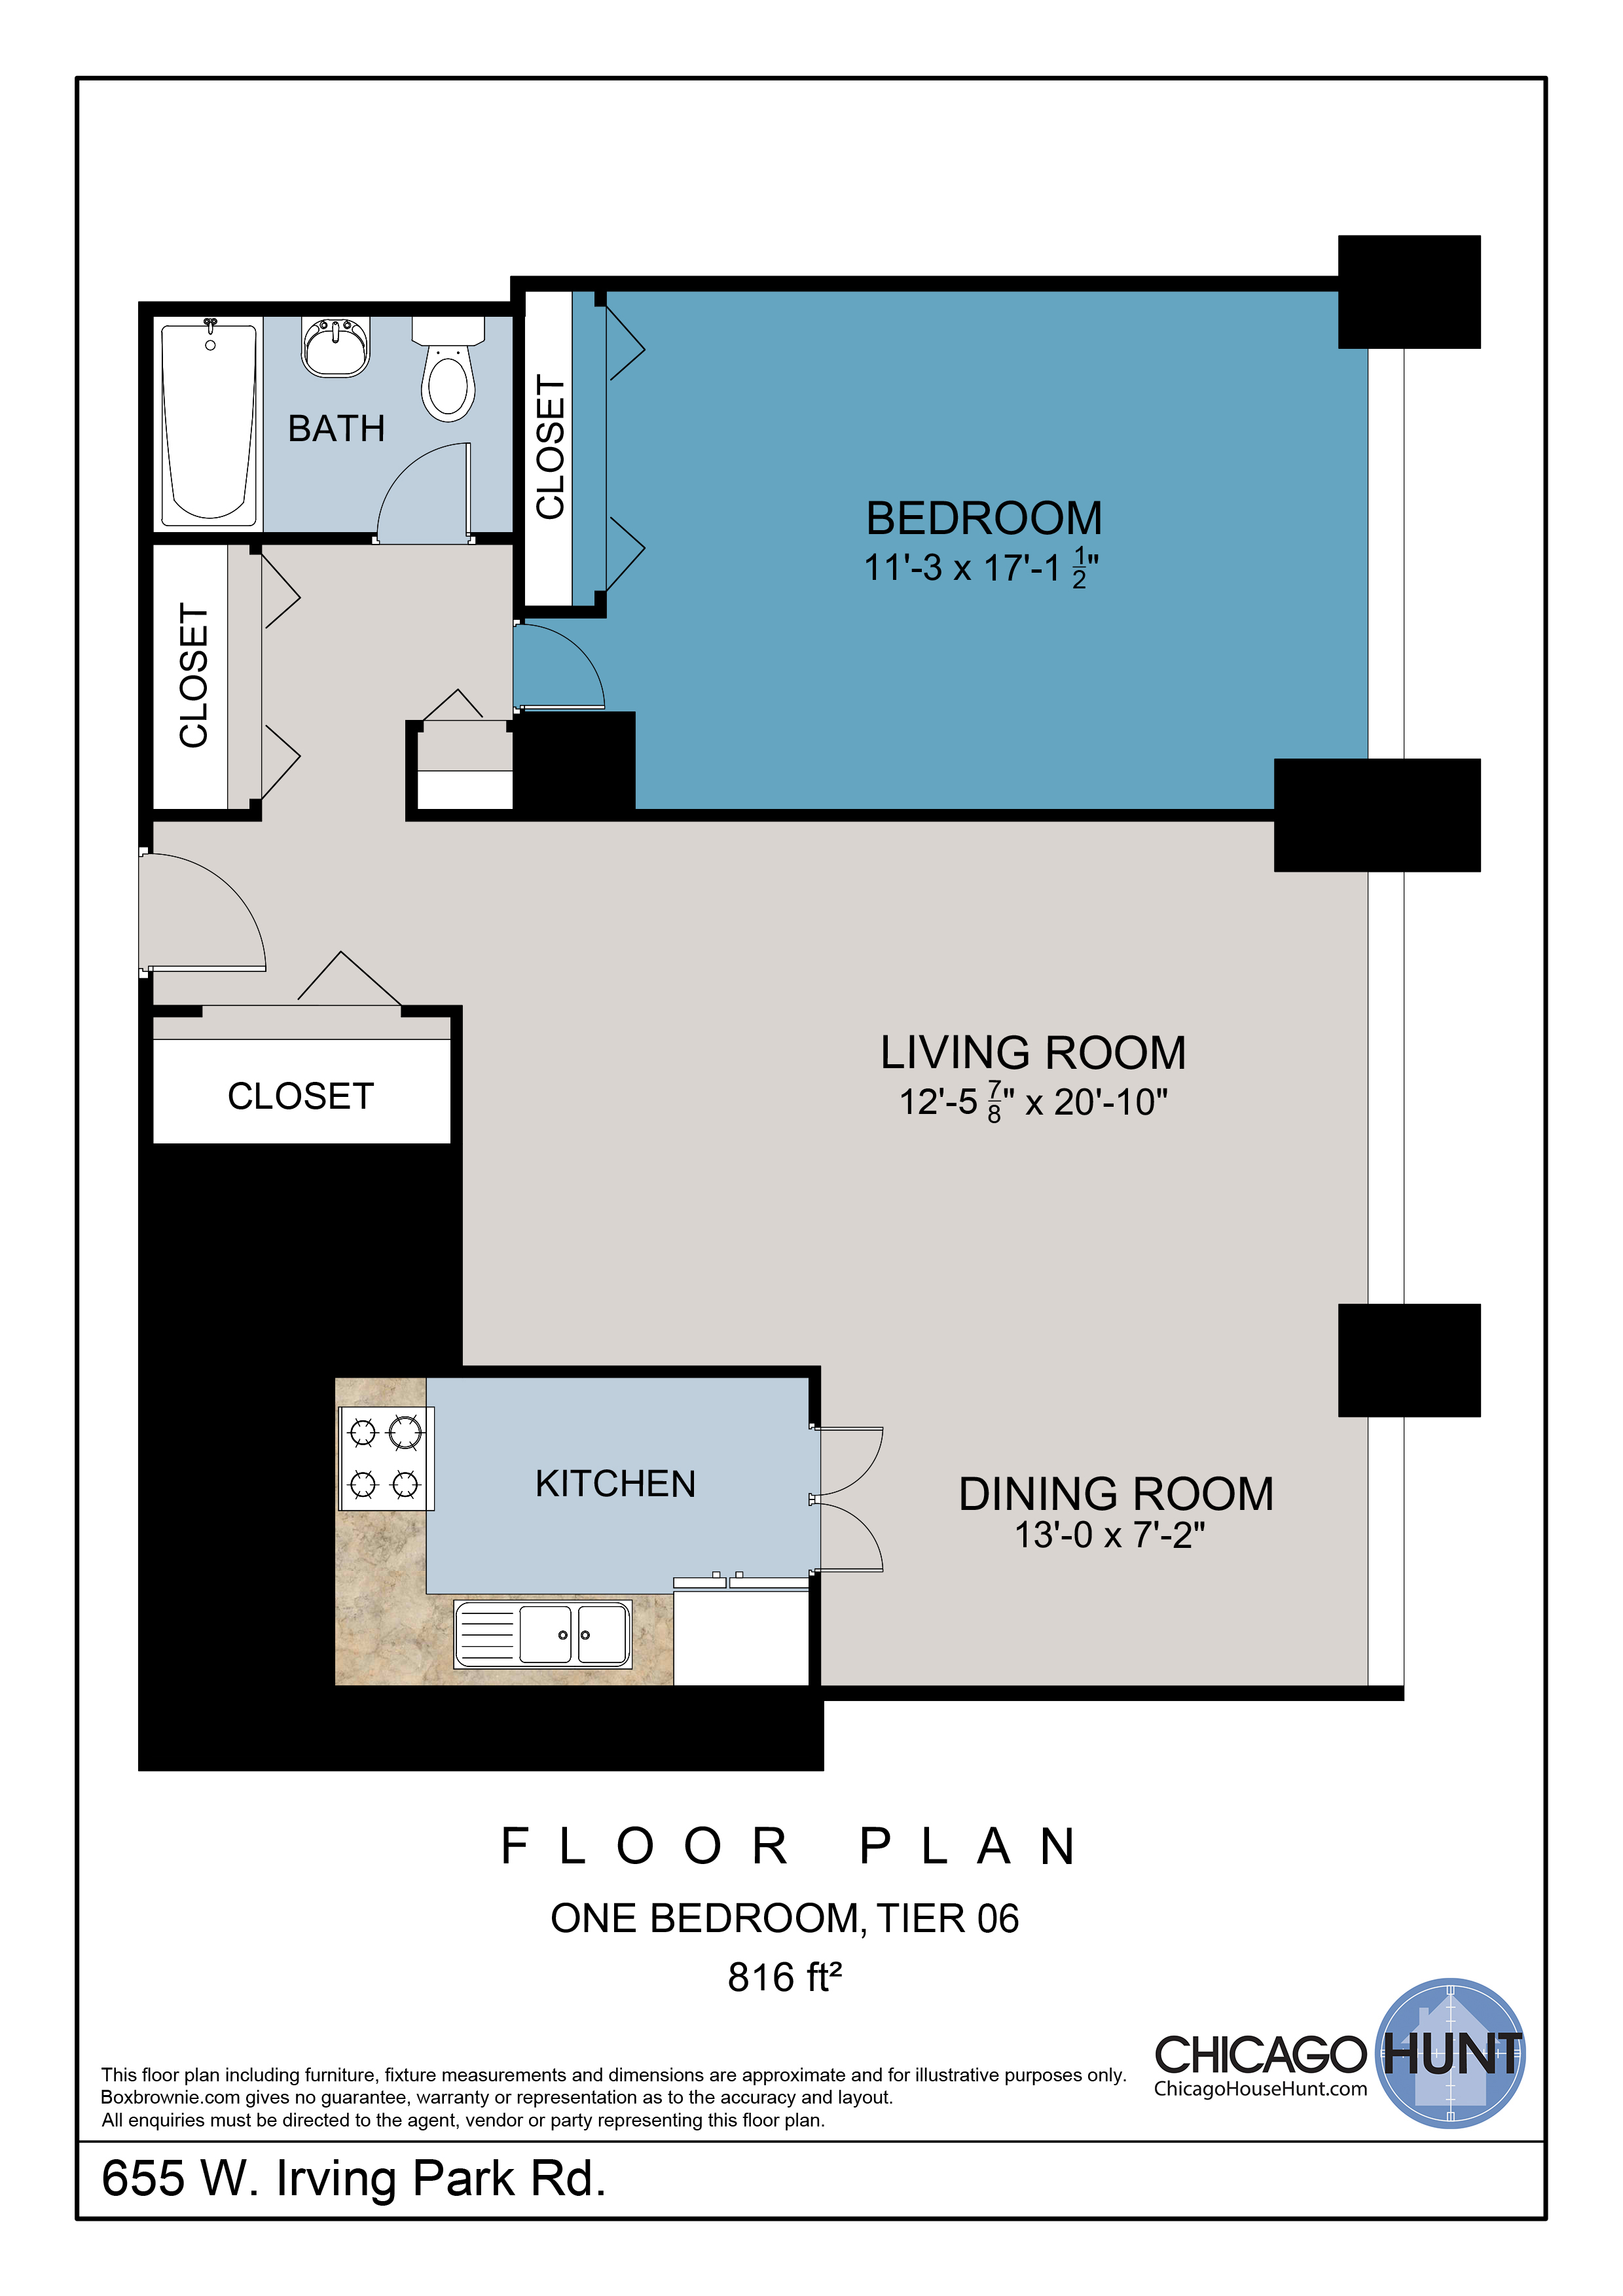 655 Irving Park, Park Place Towere - Floor Plan - Tier 06